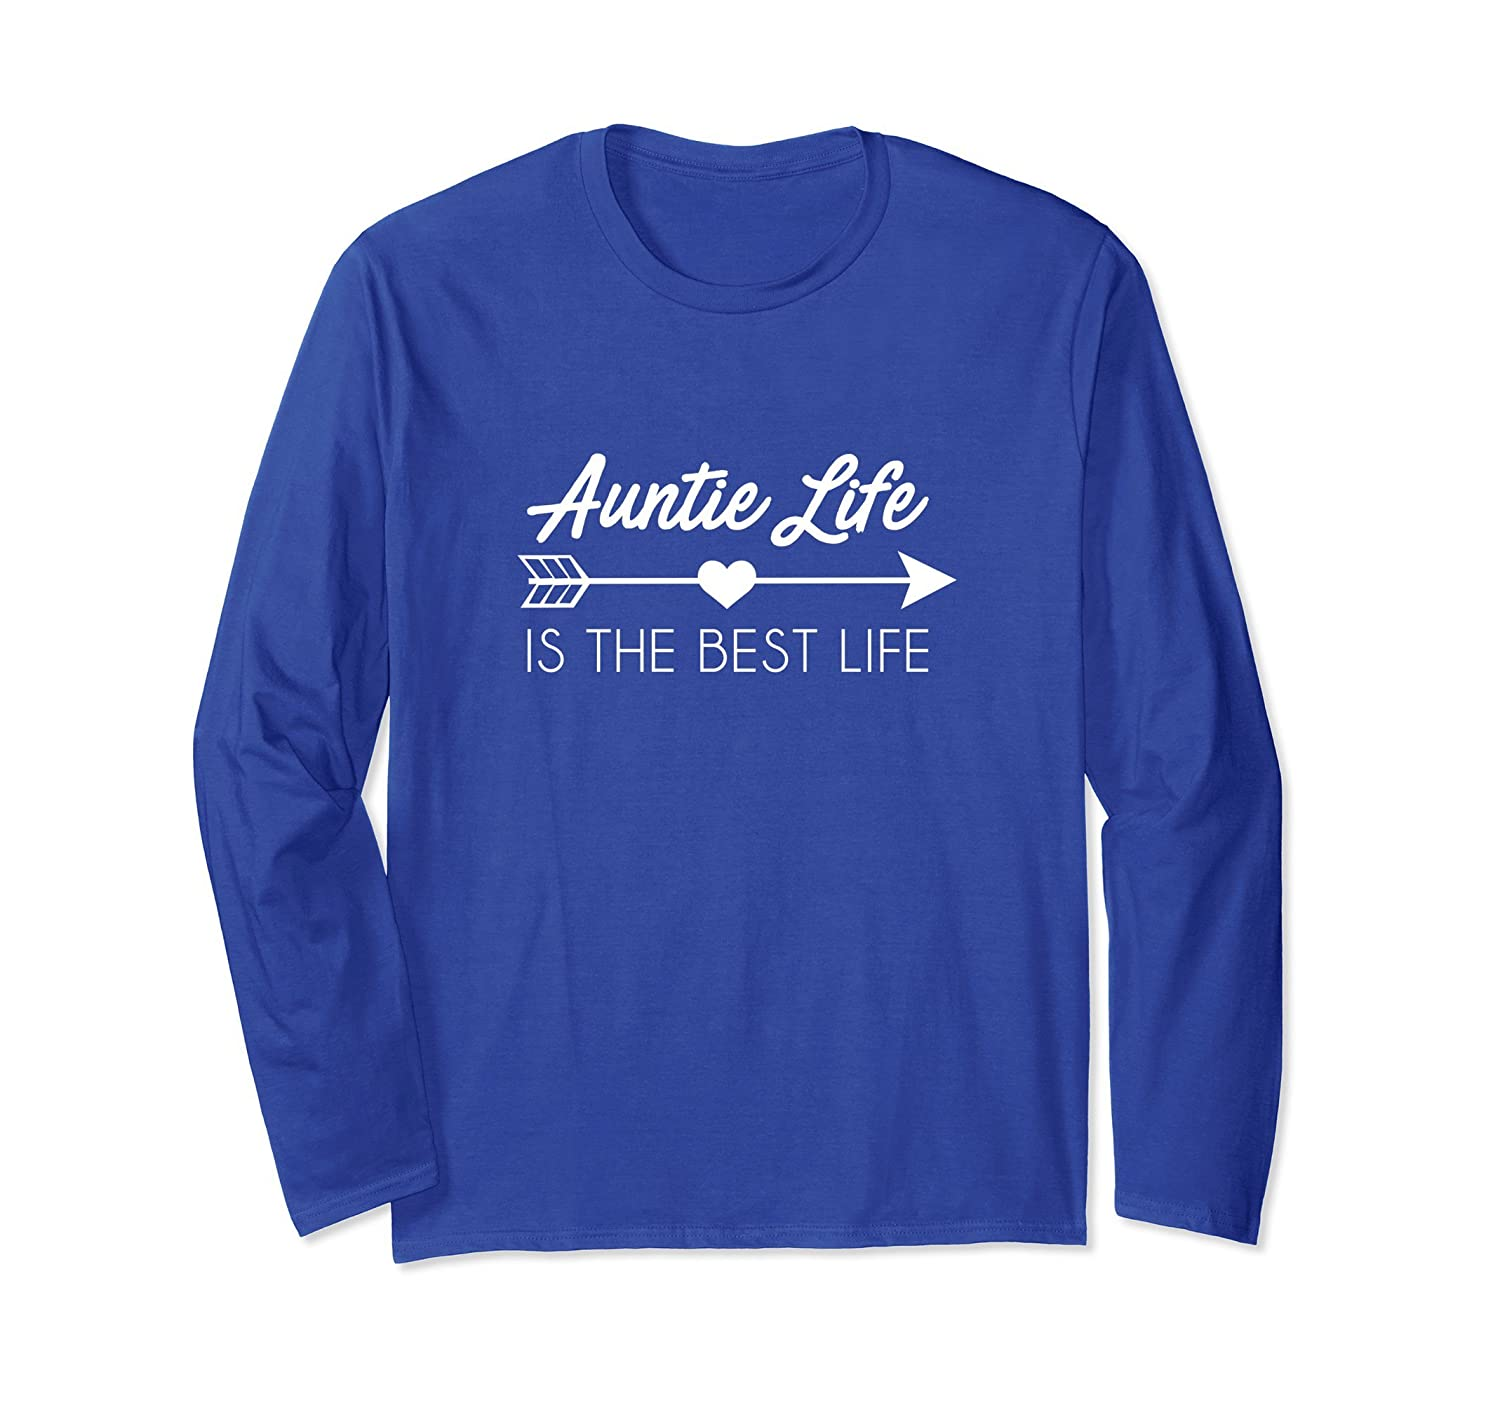 Auntie Life is the Best Life Shirt Cute Mother's Day Gift-TH